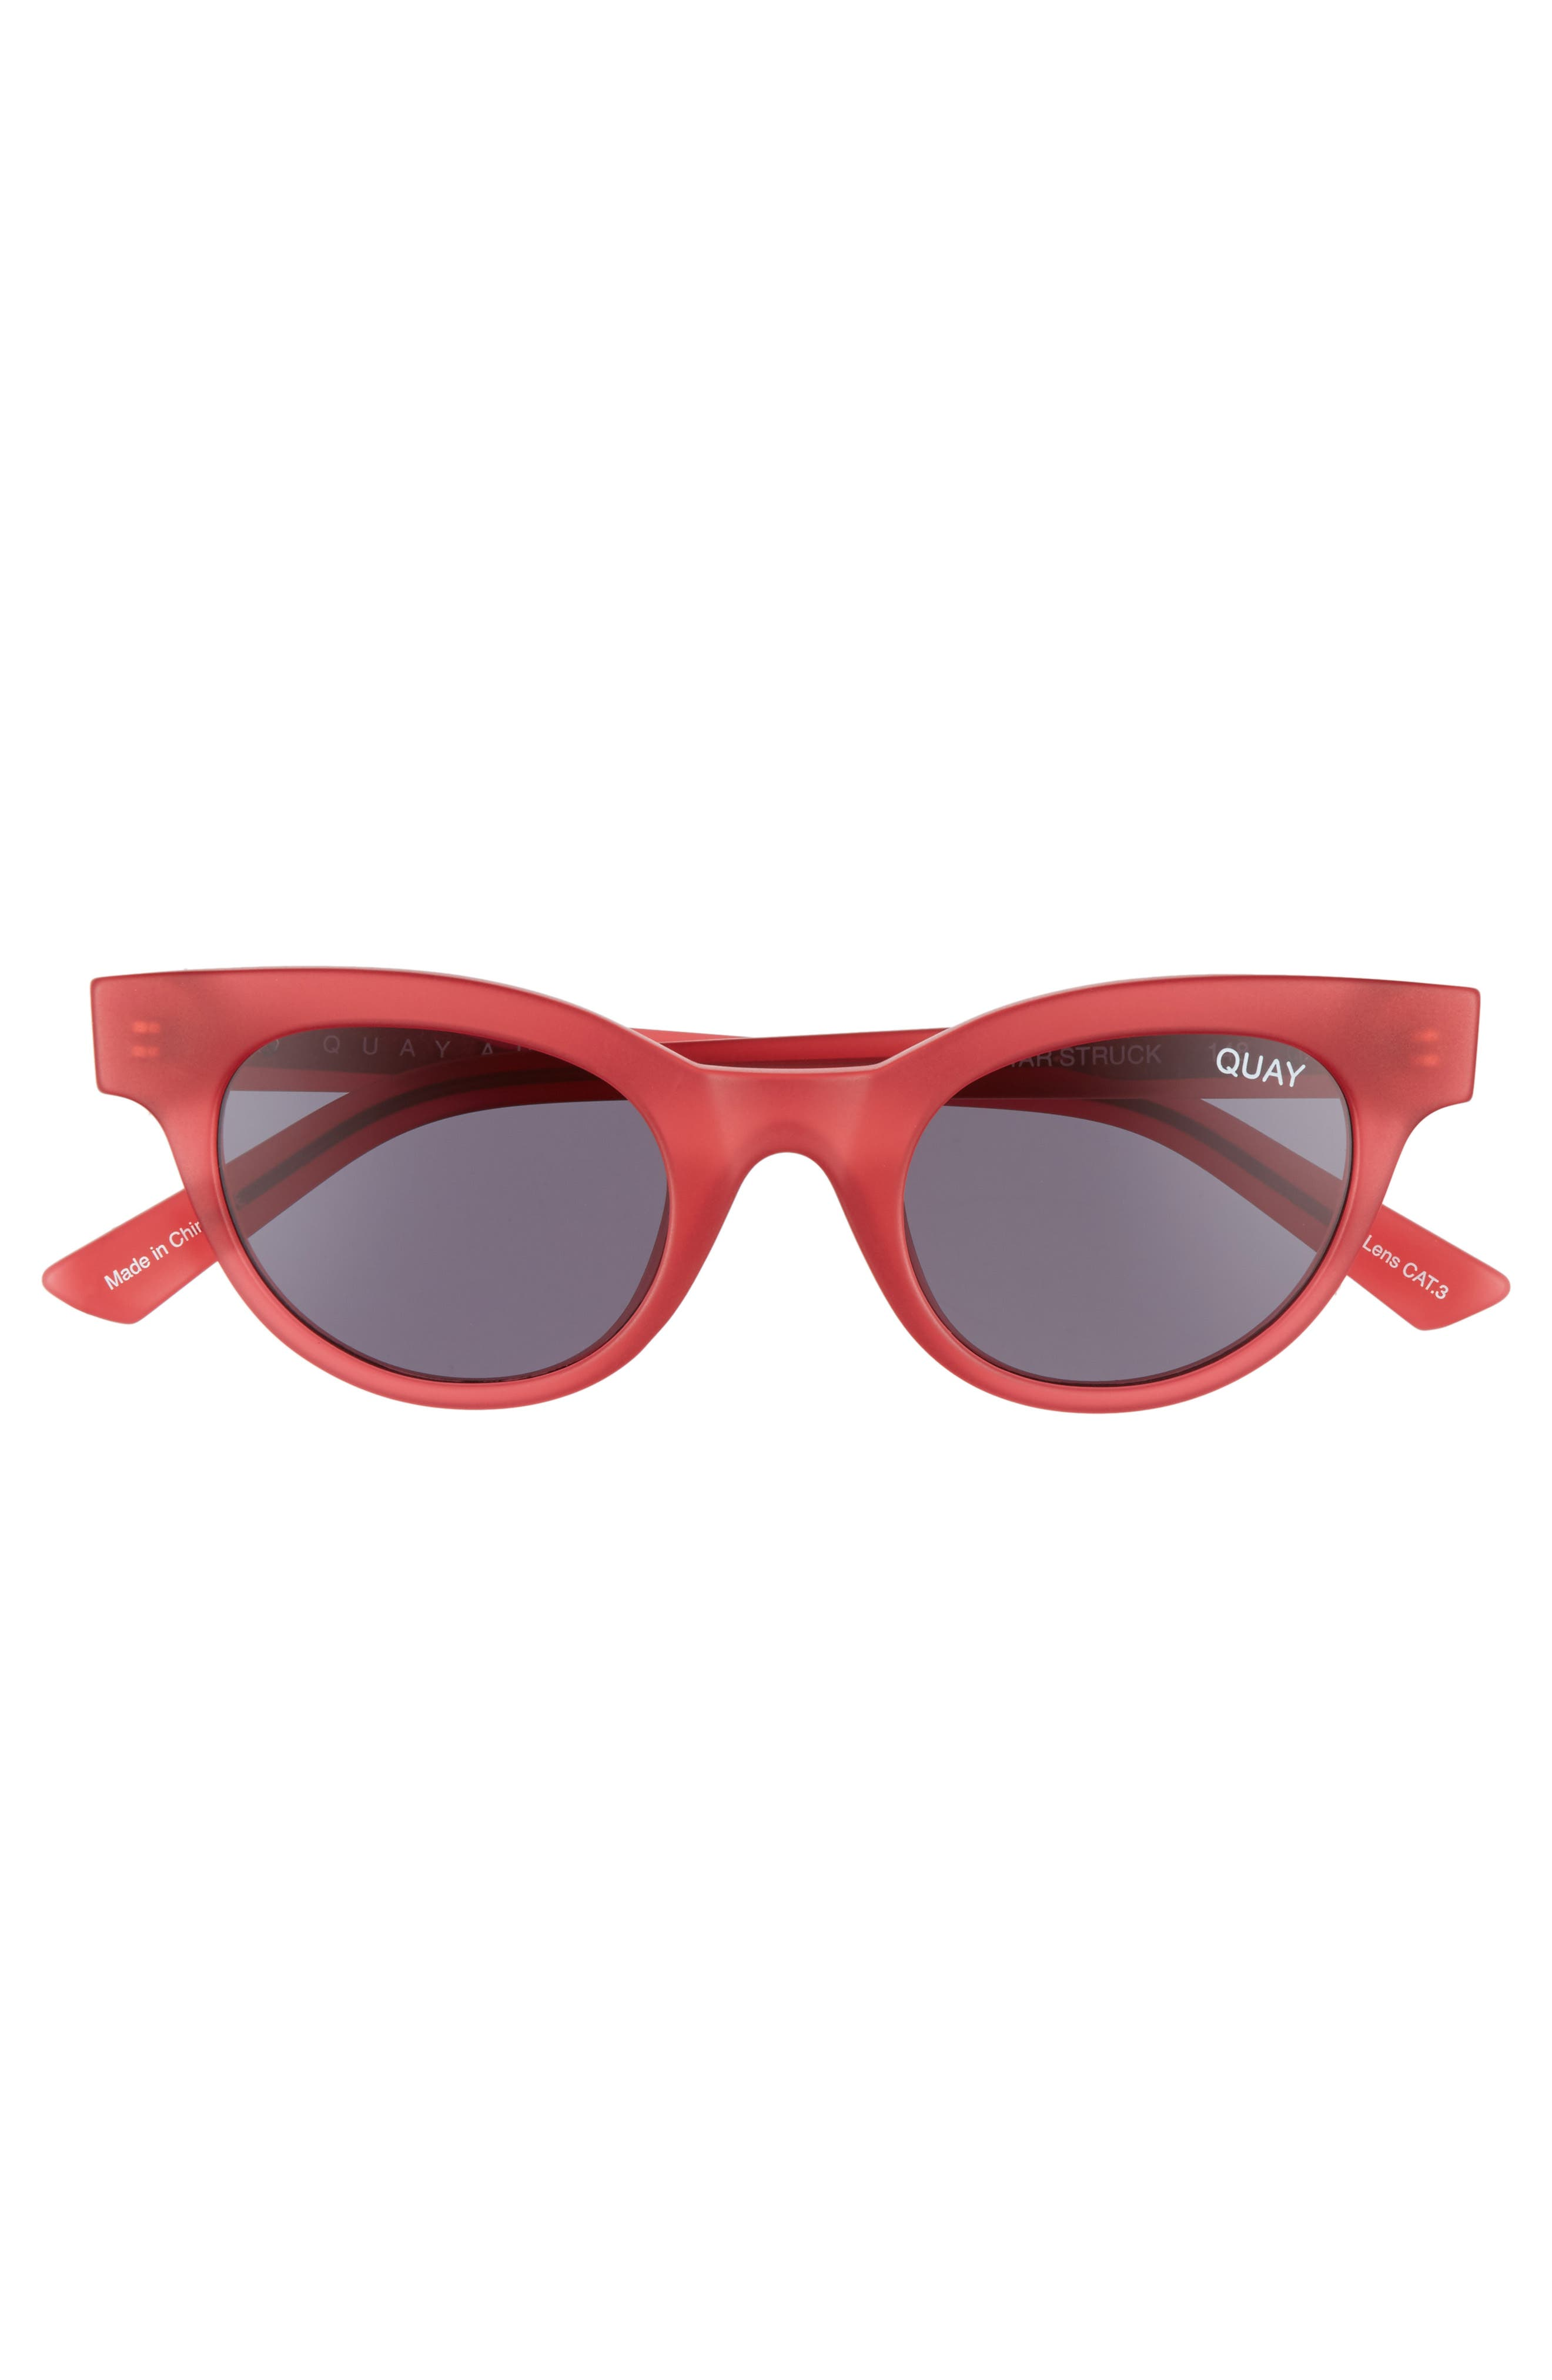 Starstruck 48mm Cat Eye Sunglasses,                             Alternate thumbnail 3, color,                             PINK SMOKE